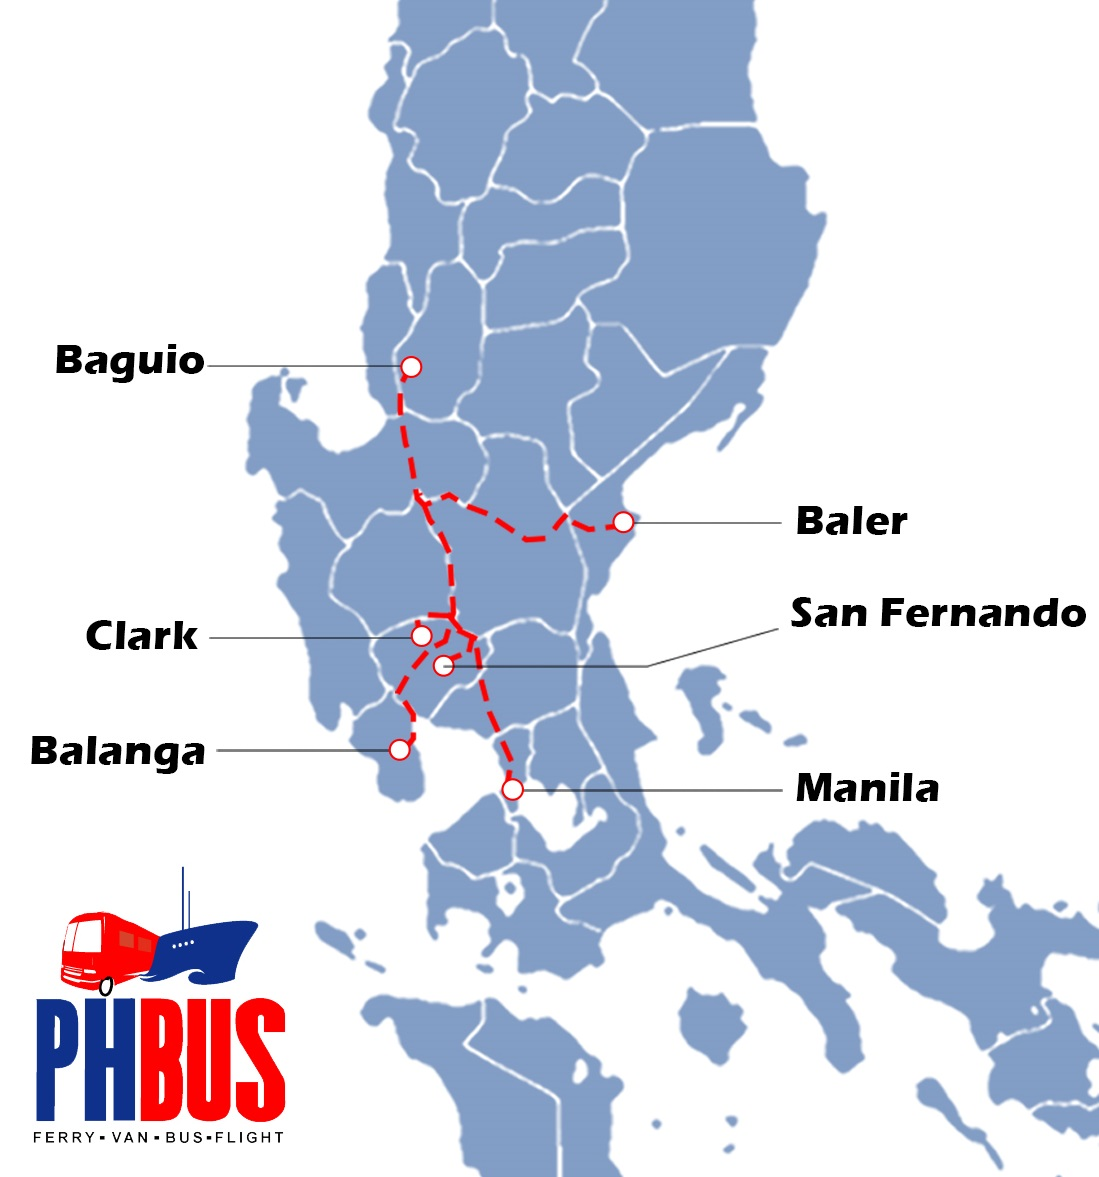 joy-bus-route-map-phbus-no-logo.jpg